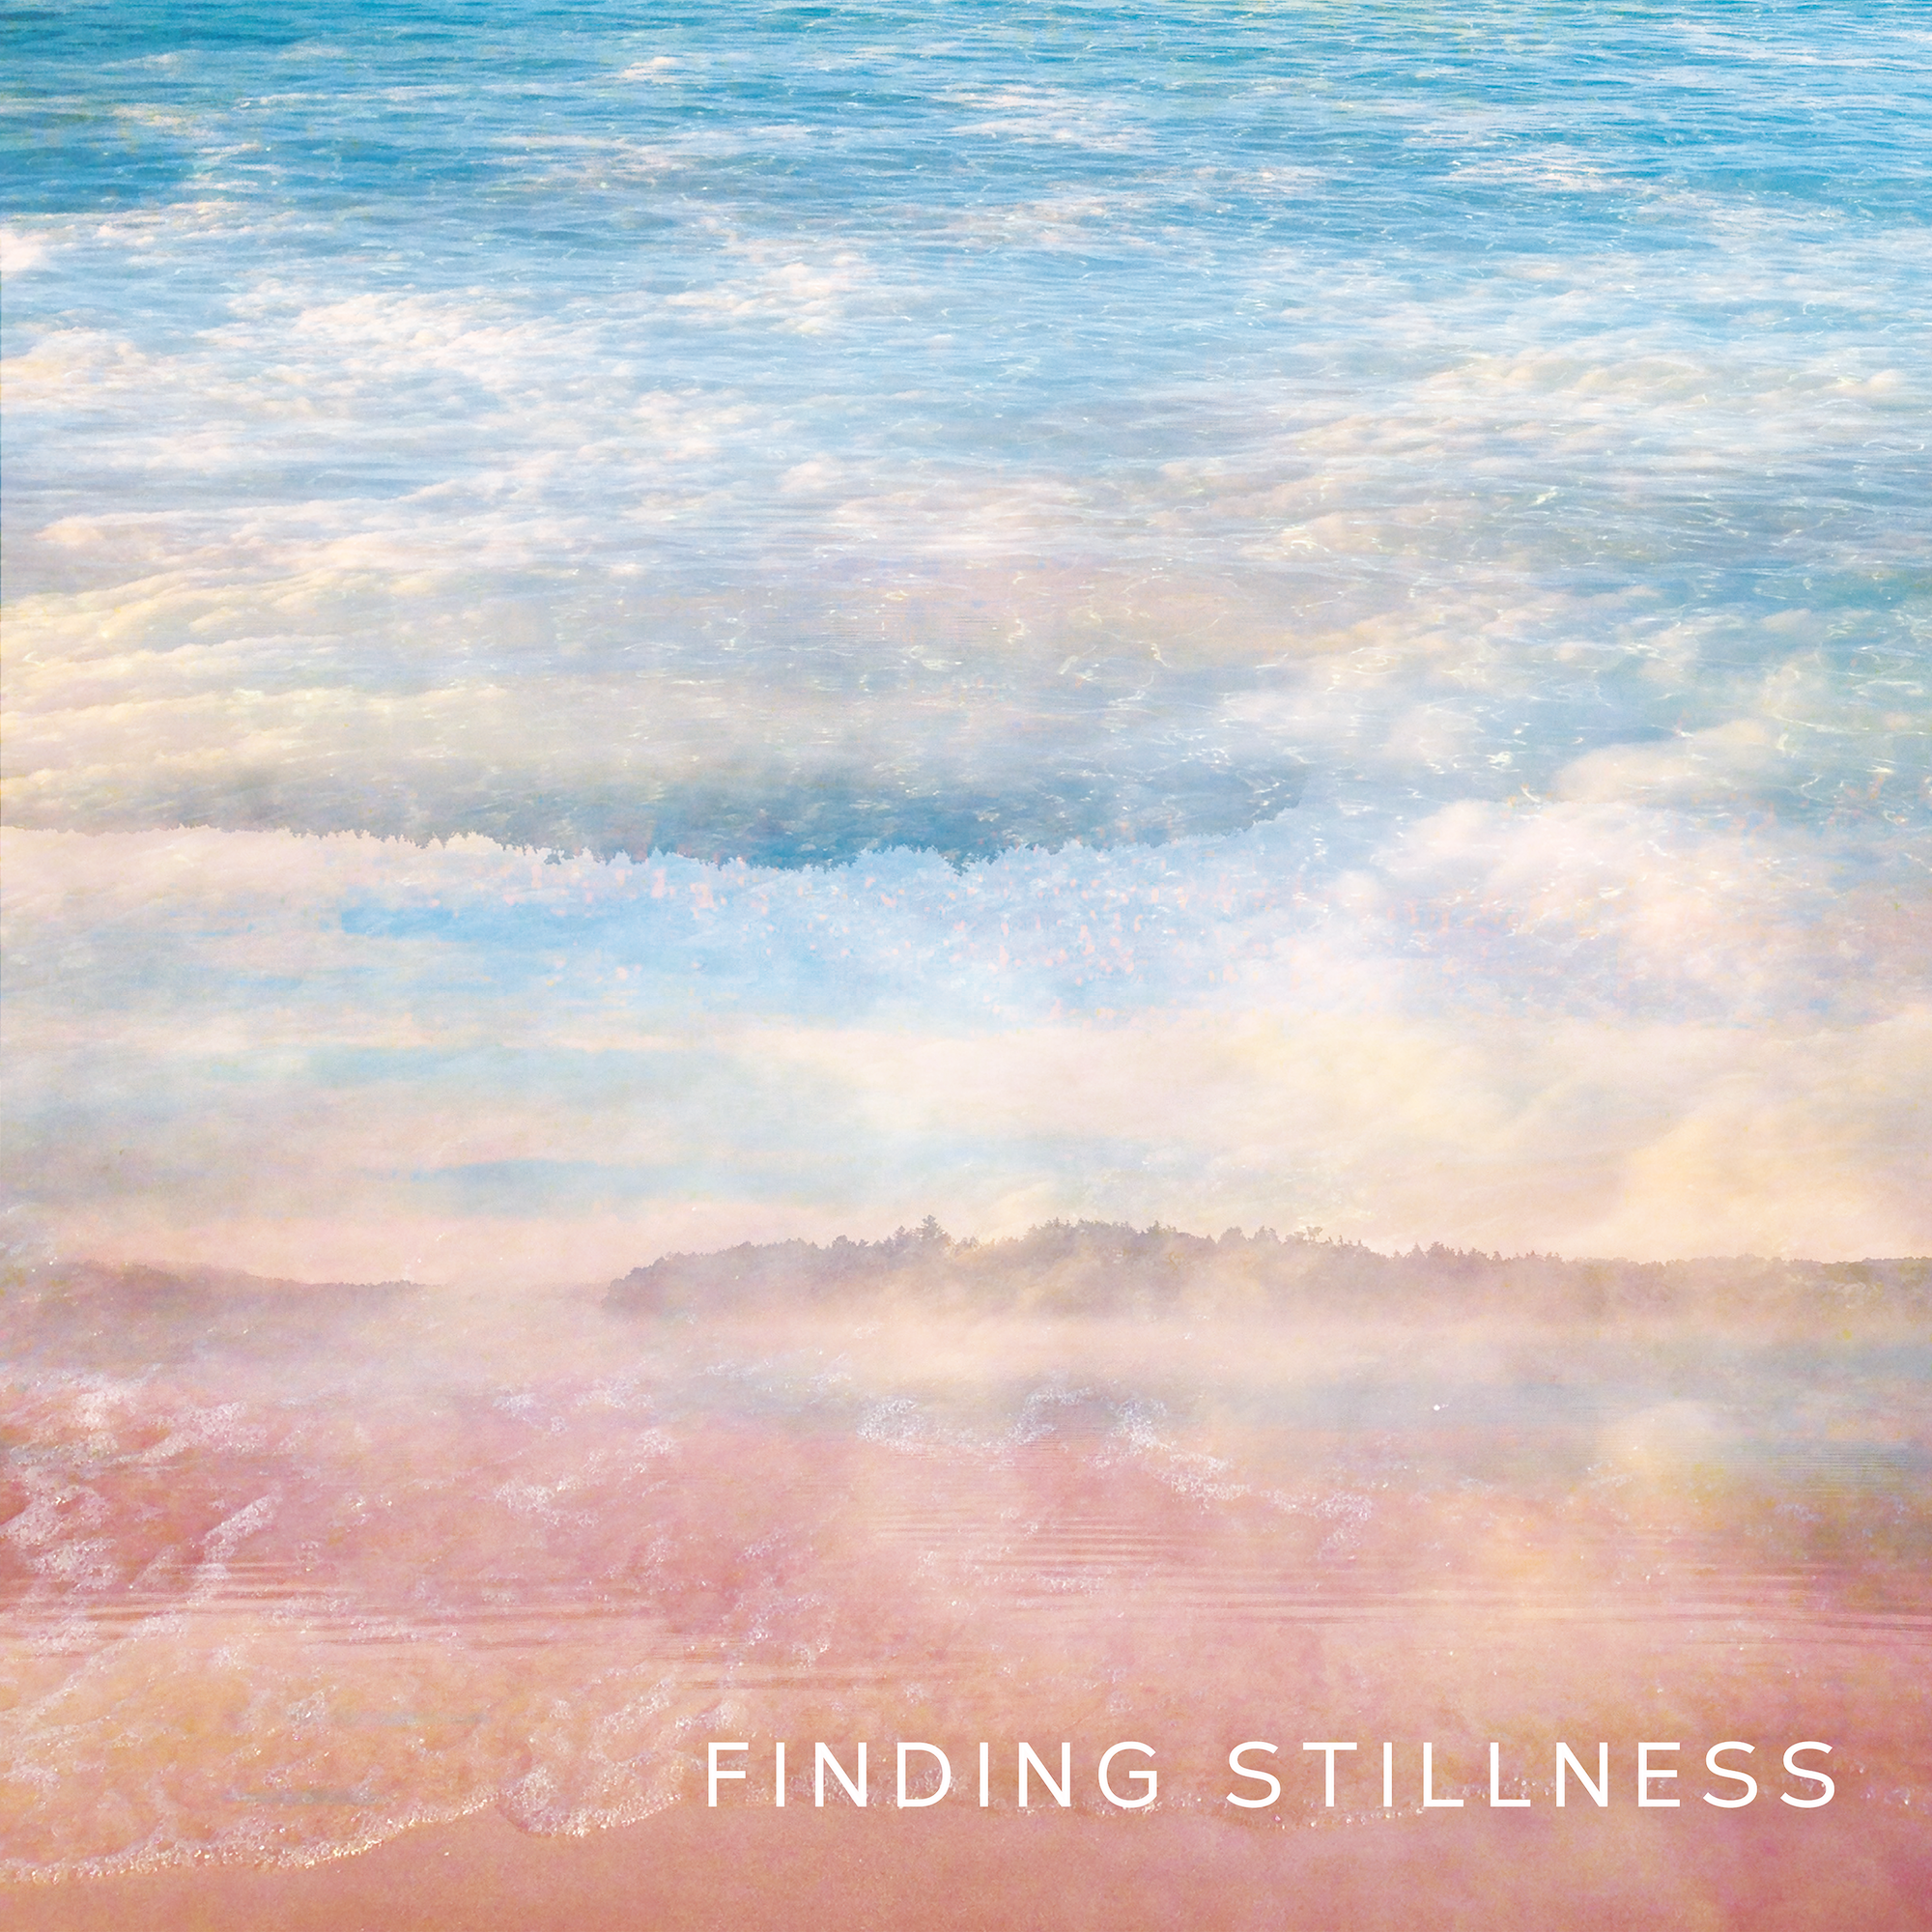 4. Finding Stillness 2000x2000.png